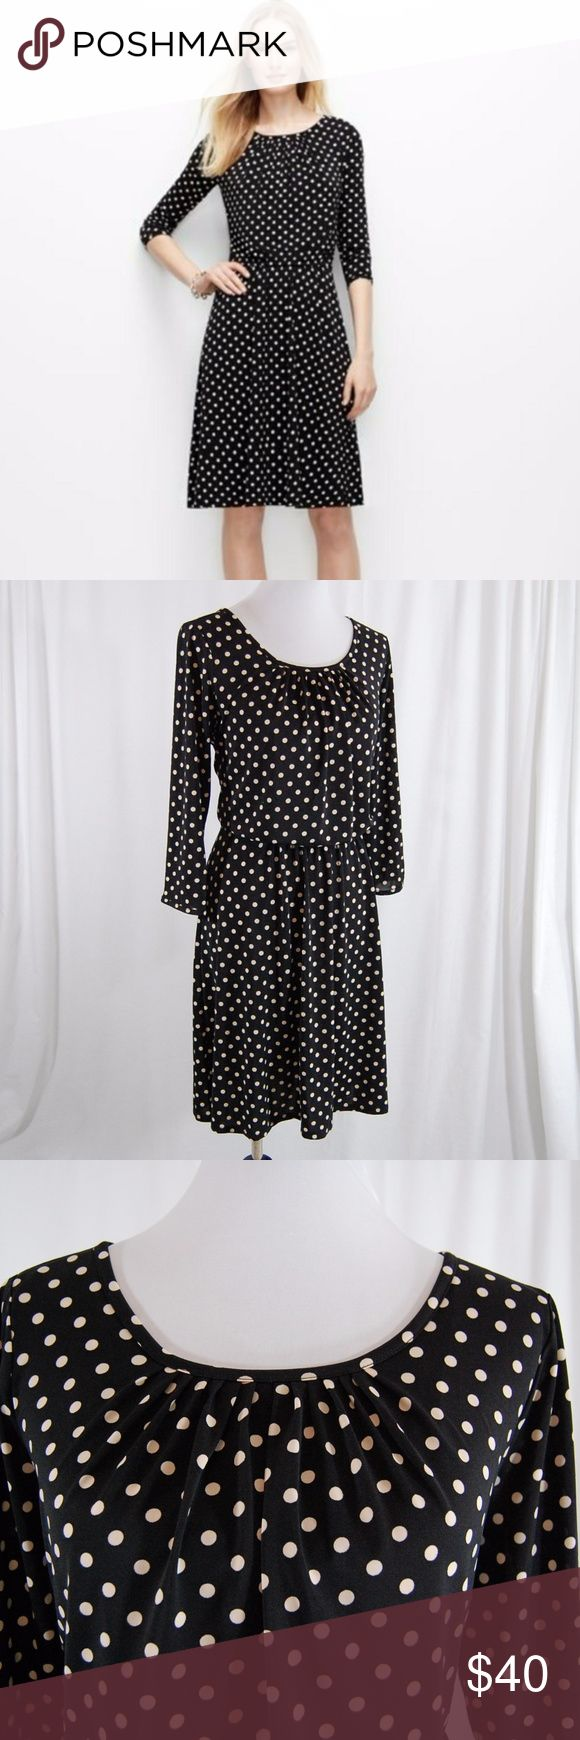 "Ann Taylor Stretchy Polka Dot Dress Unlined. Elastic waist. 3/4 sleeves. Pleated scoop neckline. Soft, comfortable, bouncy and a great dress overall.  Very good condition with minimal wear. Great for work or play!  Approximate measurements (taken flat): --Bust = 20.5"" --Waist = 16-24"" (elastic) --Length = 39"" --Sleeve = 18.5"" Ann Taylor Dresses"